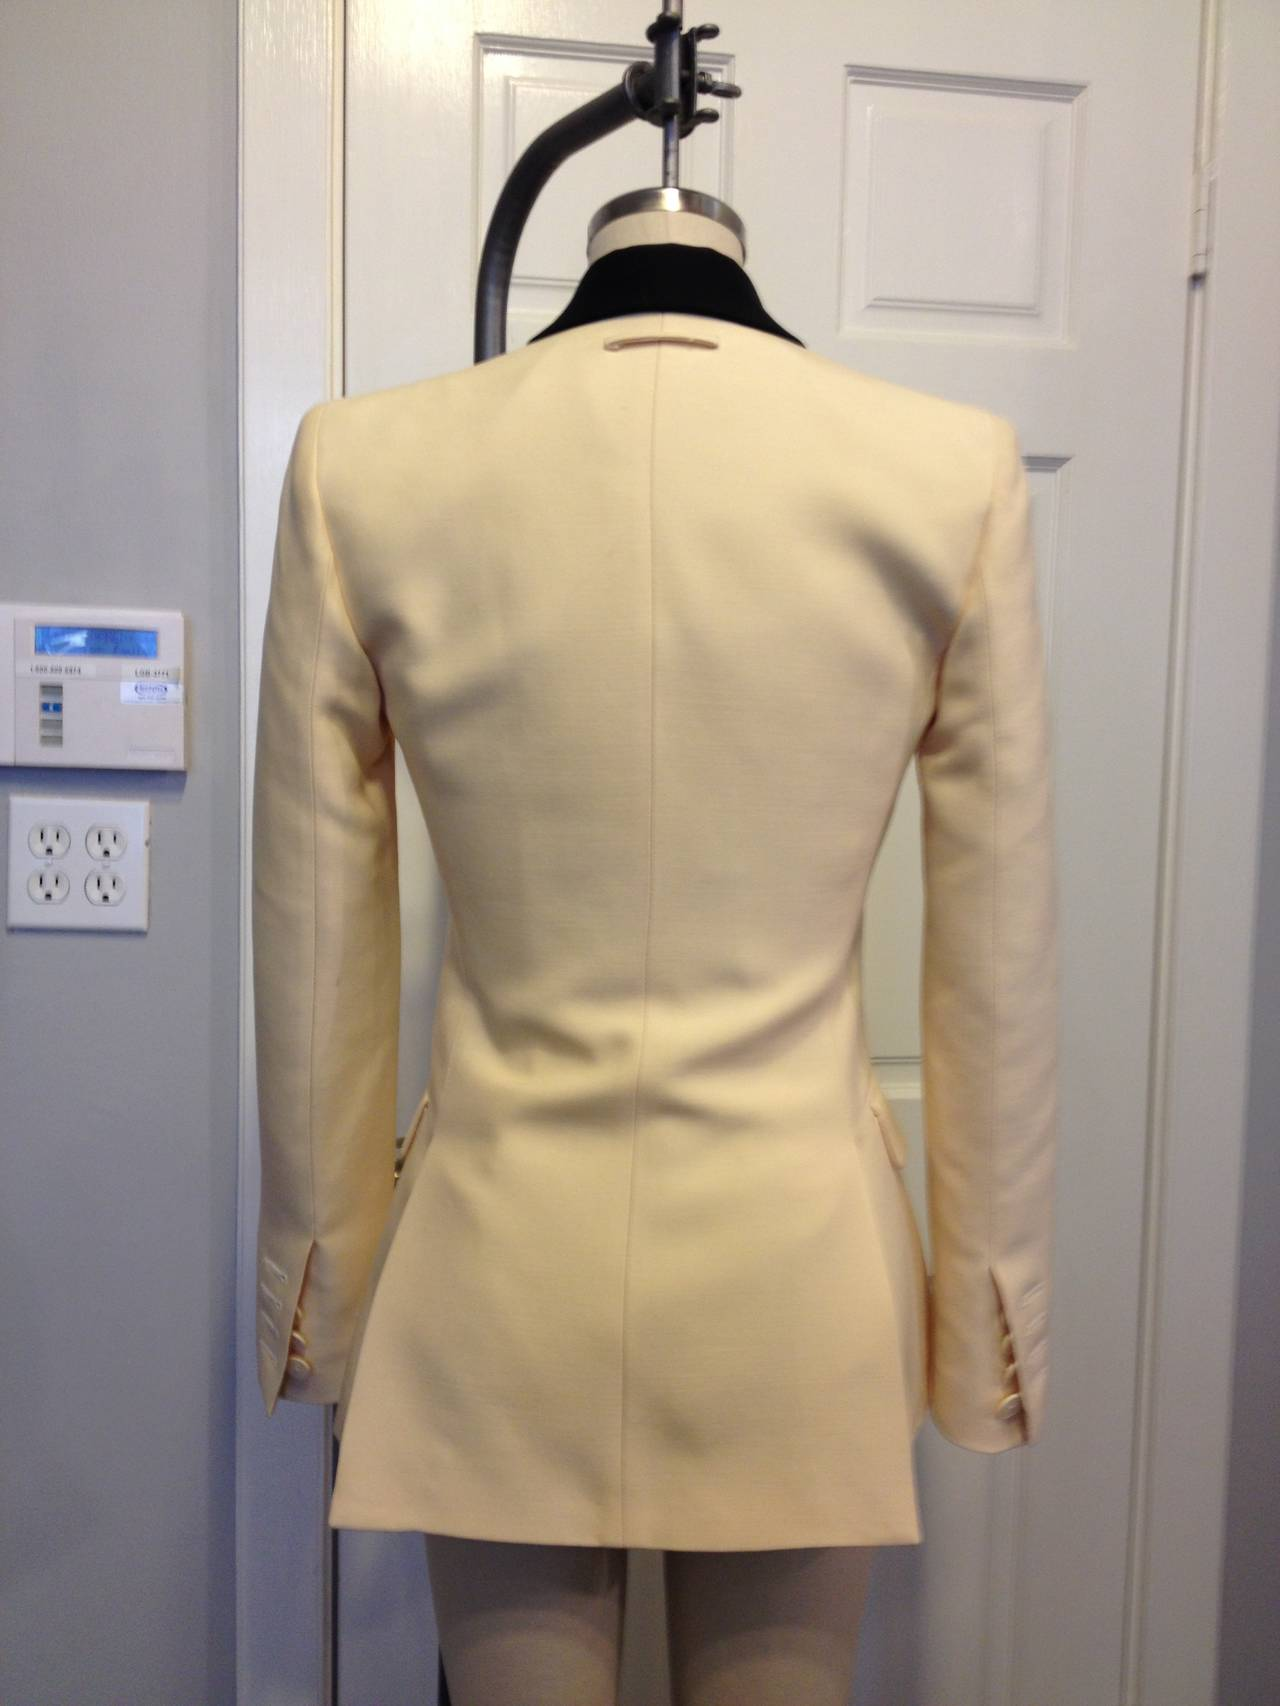 Jean Paul Gaultier Cream Embroidered Blazer In Excellent Condition For Sale In San Francisco, CA